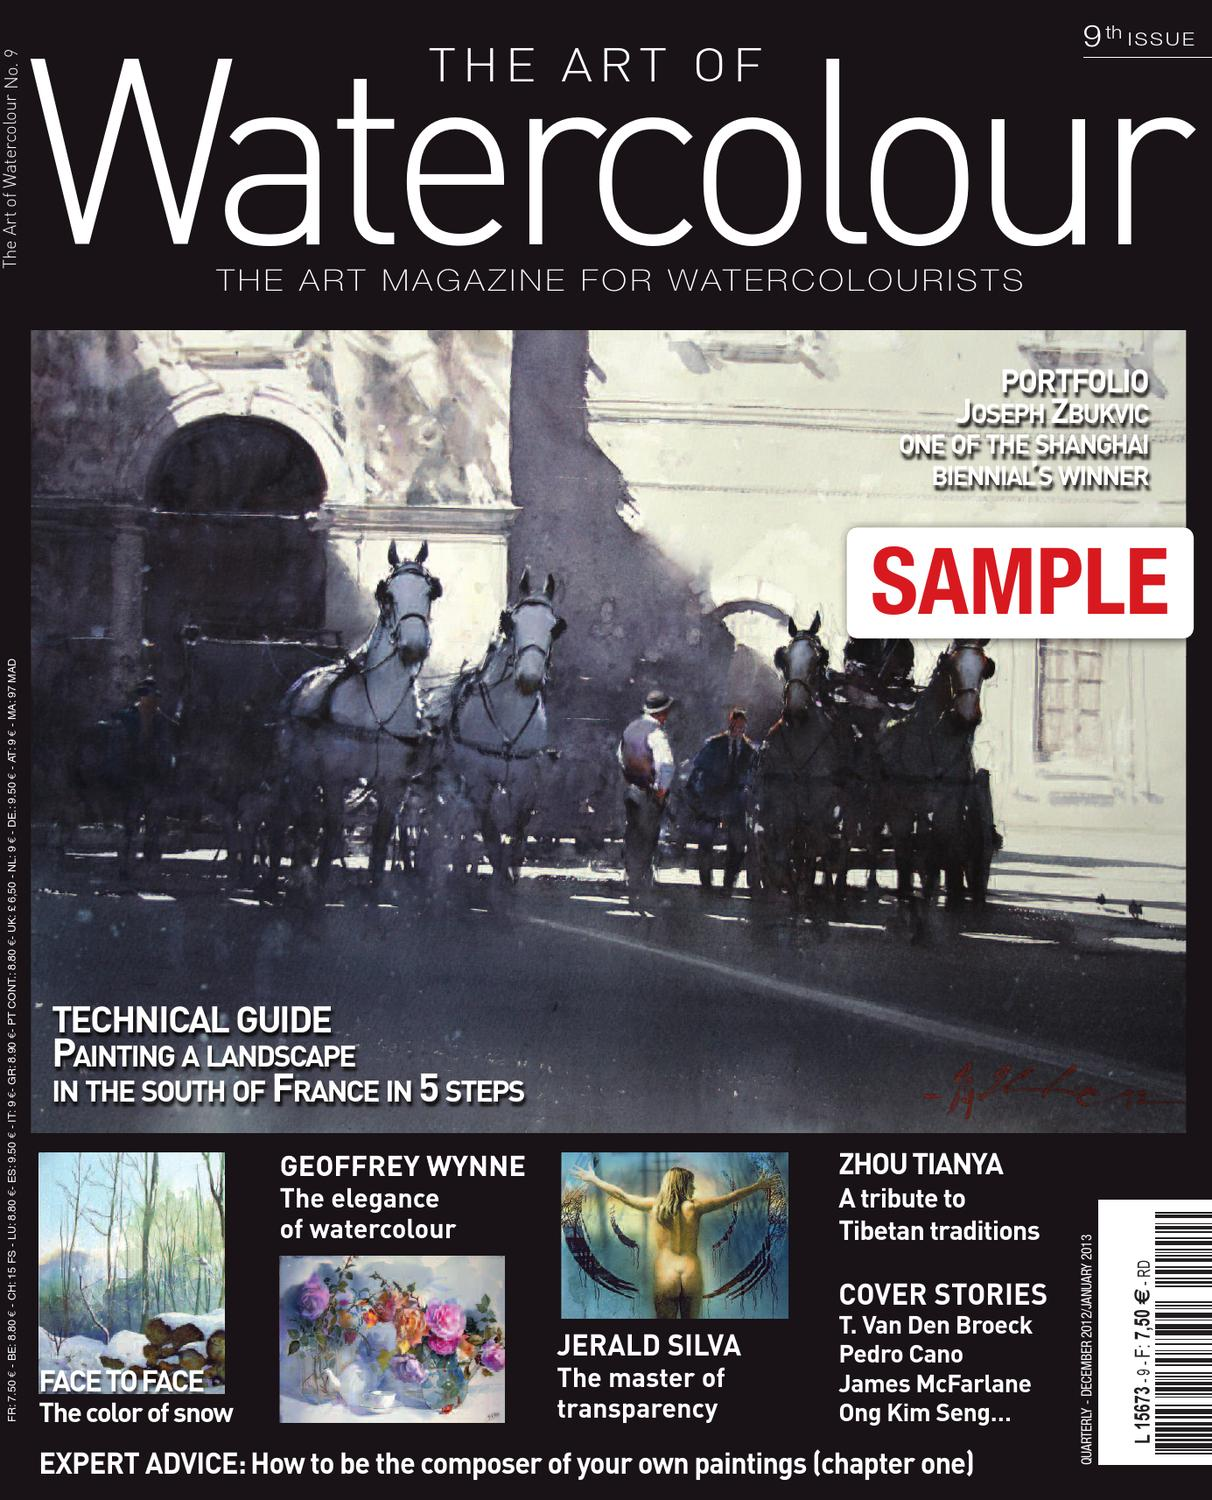 Watercolor artist magazine review - The Art Of Watercolour Magazine 9th Issue